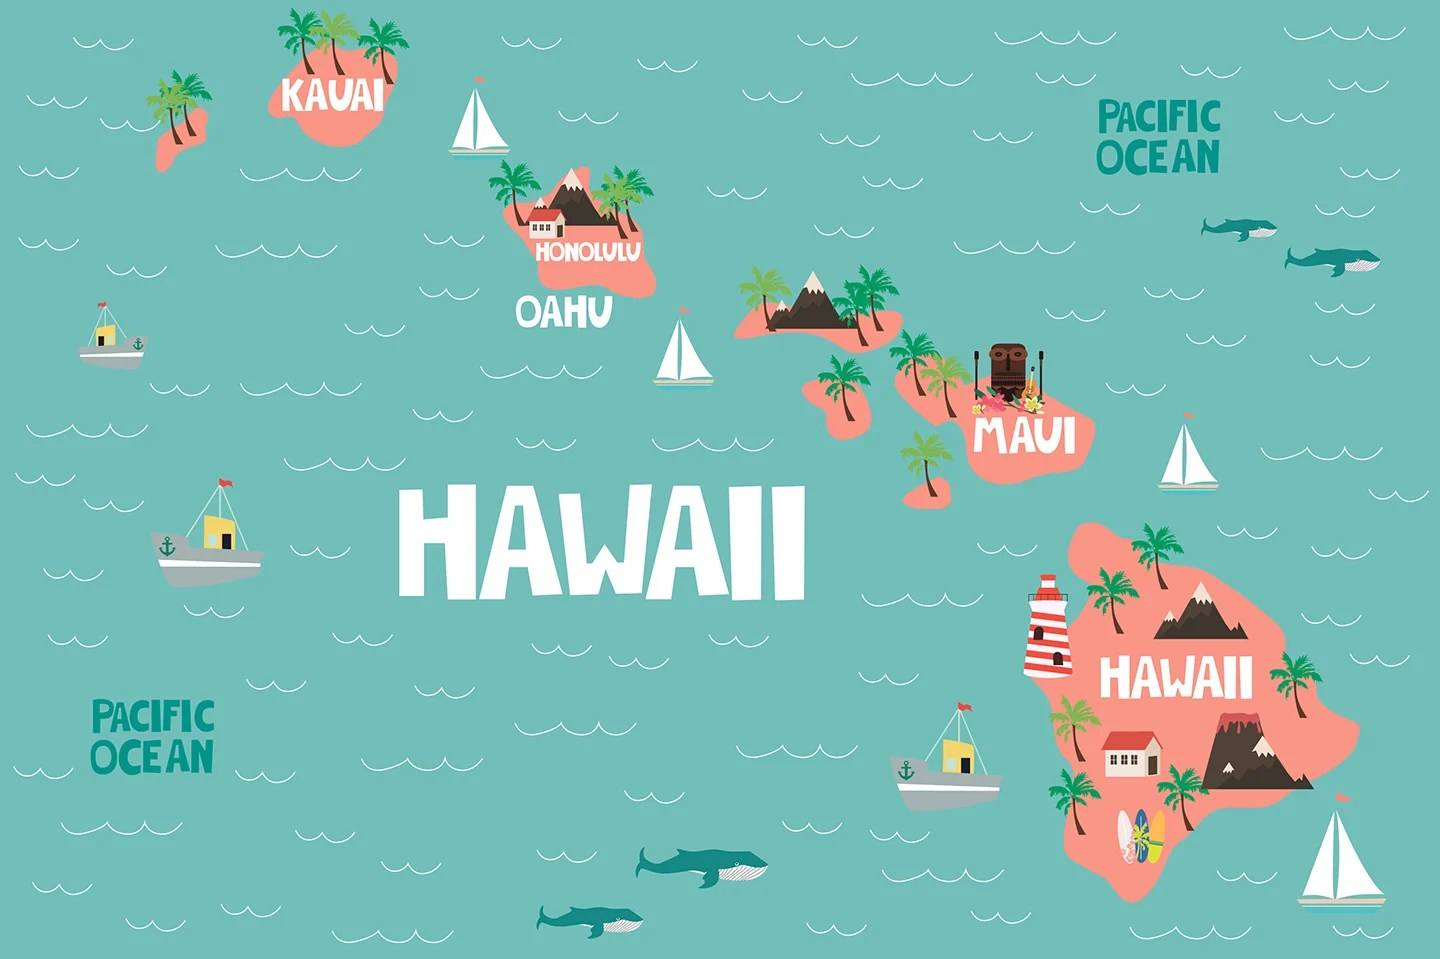 Which Hawaiian Island is the Best for You? on map of the grand canyon, map of arizona, map of michigan, map of philippines, map of hawaiian islands, map of americas, map of cleveland, map of north carolina, map of usa, map of illinois, map of waikiki, map of mexico, map of pearl harbor, map of italy, map of oahu, map of guam, map of florida, map of massachusetts, map of the panama canal, map of maine, map of texas, map of molokai, map of new jersey, map of maui, map of virginia, map of alaska, map of china, map of bahamas, map of kauai, map of canada, google maps hawaii, map of mauna loa, map of ohio, map of united states, map of georgia, map of delaware, map of new york, map of big island, map of california,